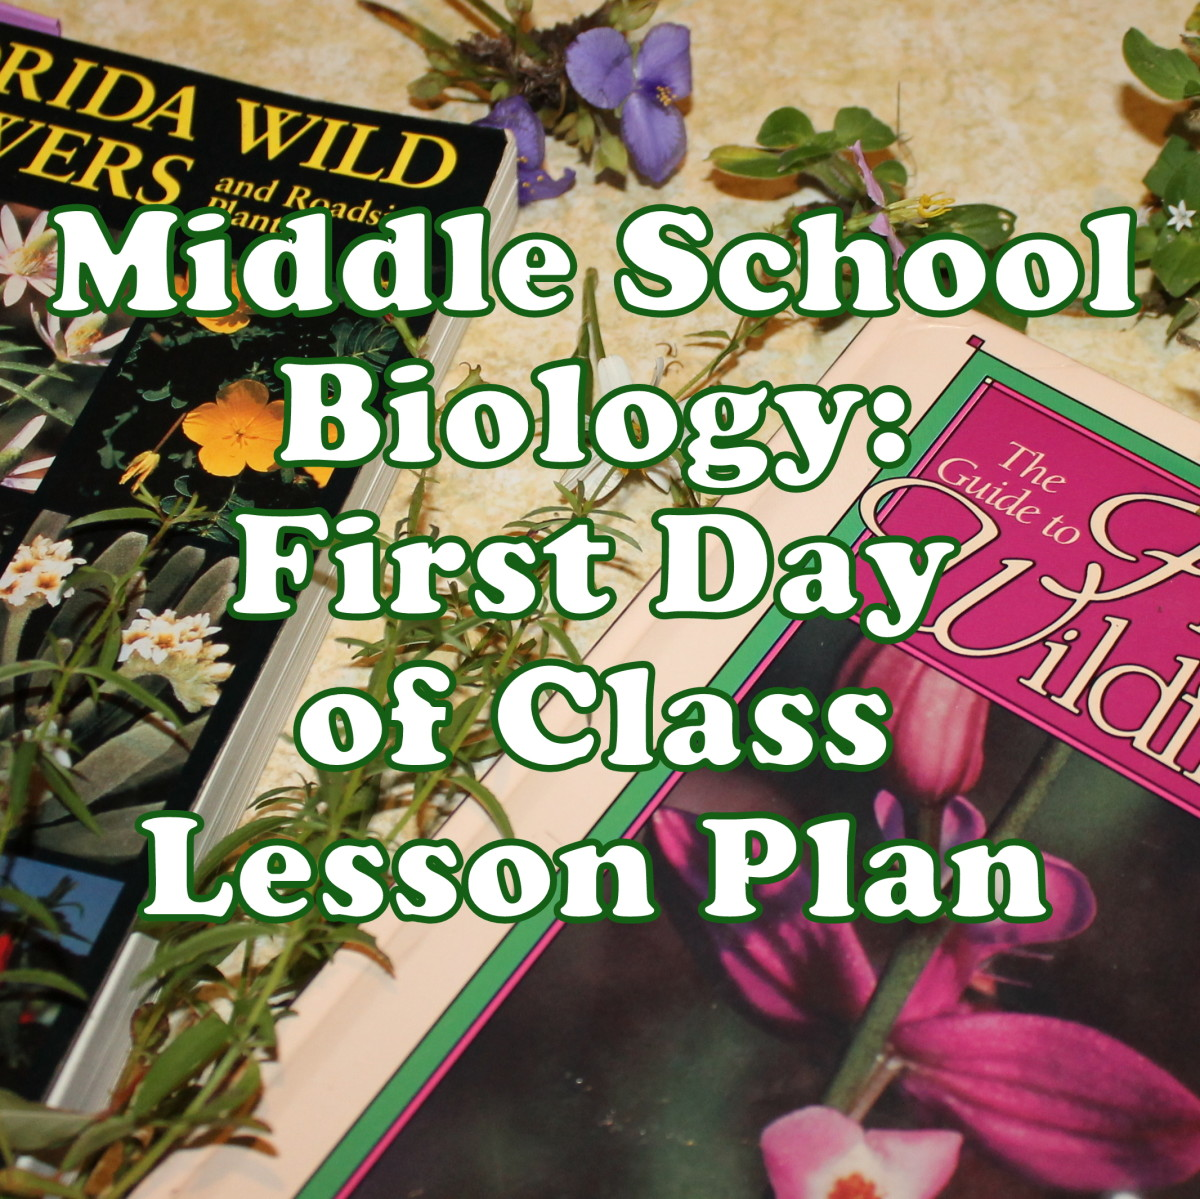 Middle School Biology First Day of Class